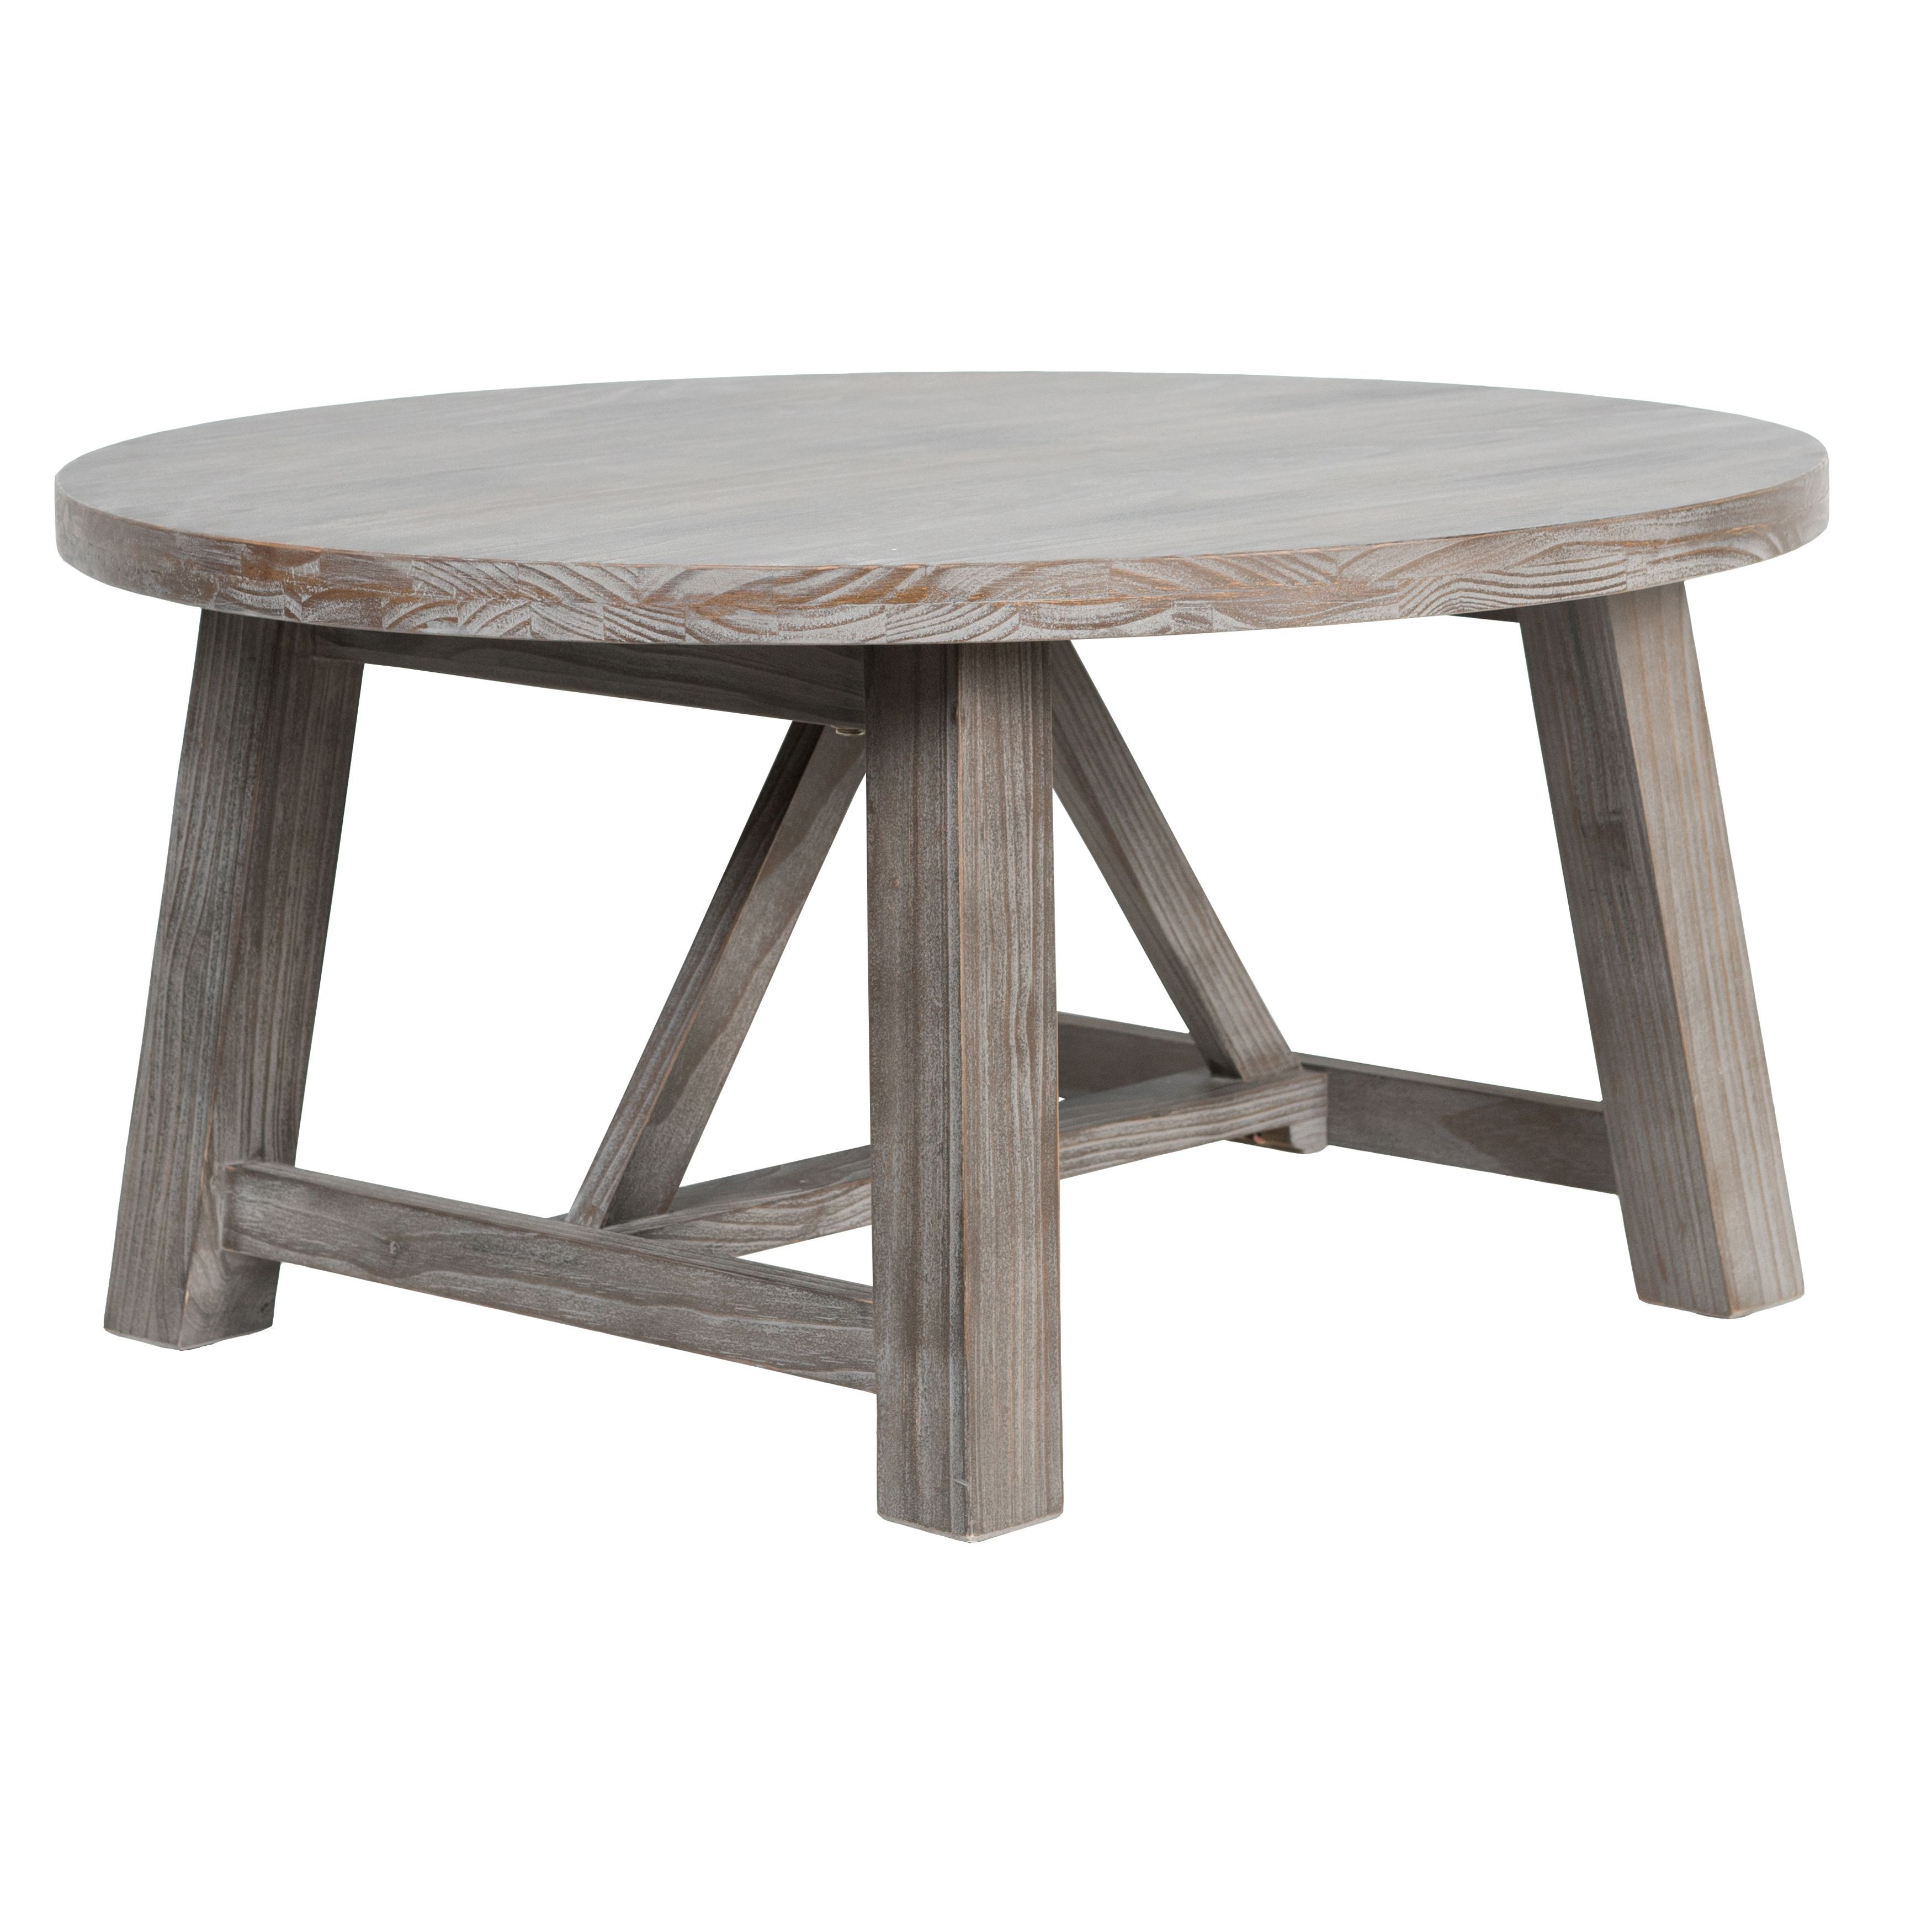 Overstock Com Online Shopping Bedding Furniture Electronics Jewelry Clothing More Round Coffee Table Coffee Table Coffee Table Farmhouse [ 3500 x 3500 Pixel ]